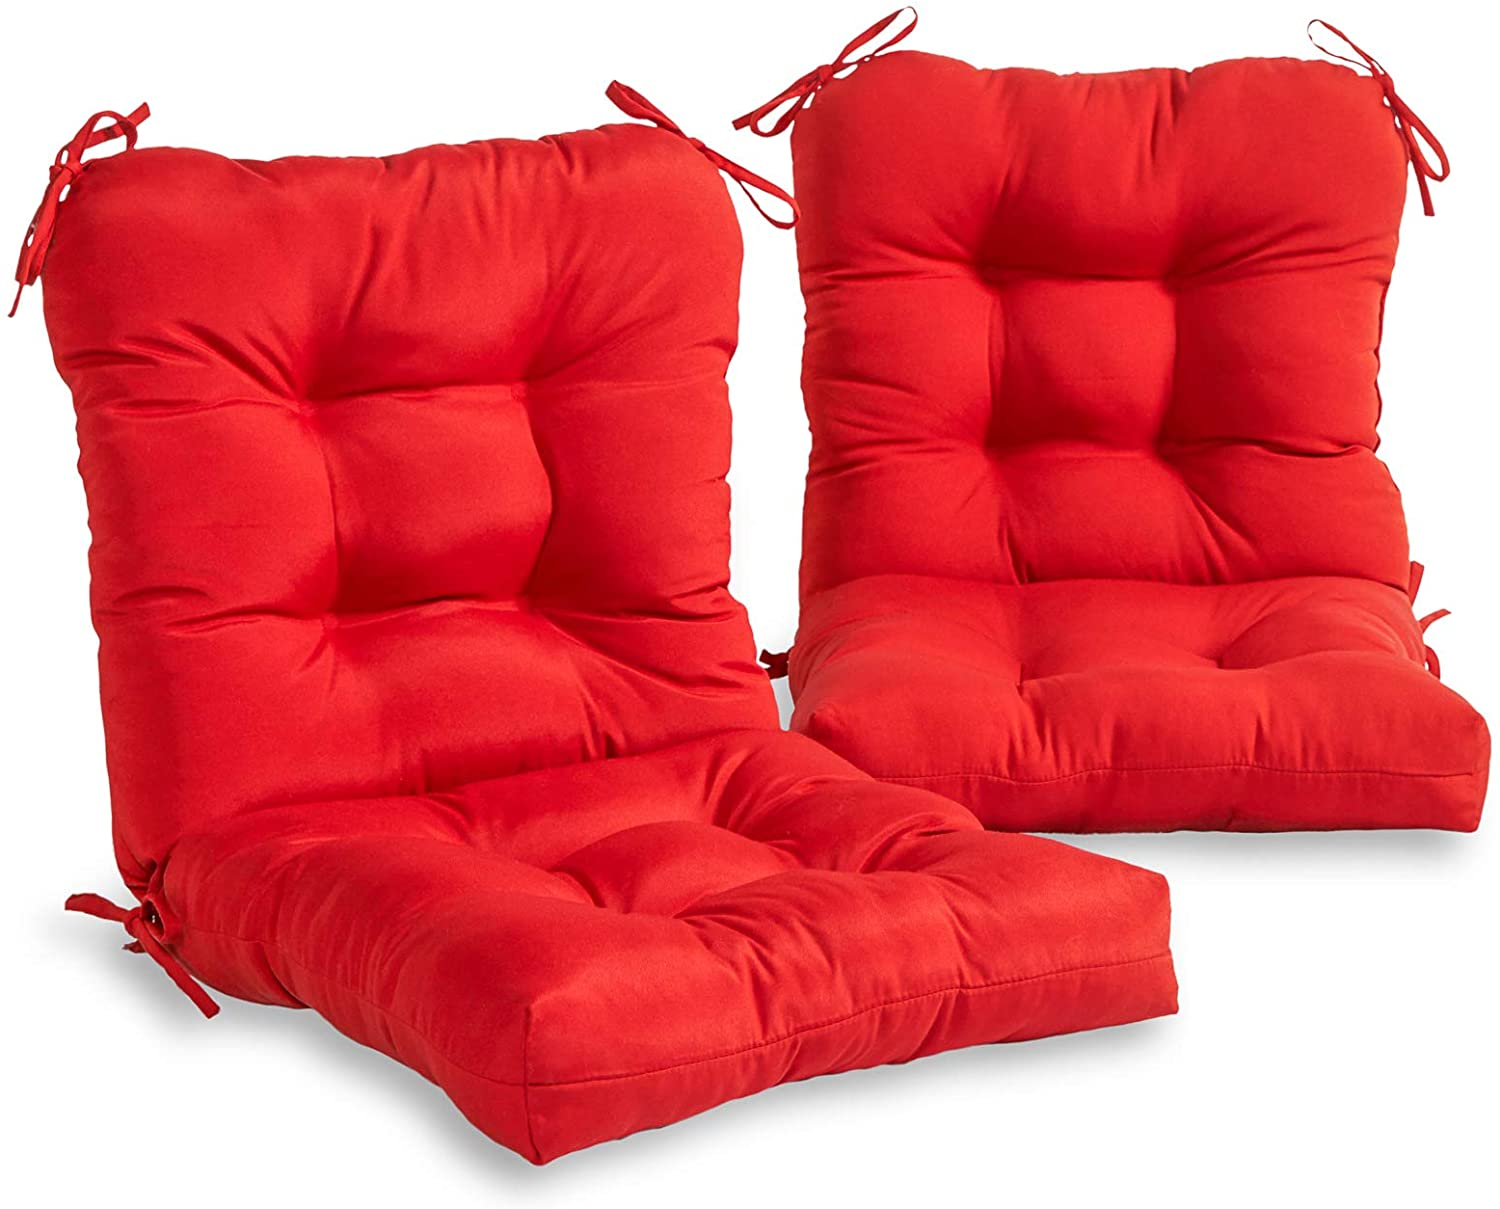 South Pine Porch AM6815S2-SALSA Solid Salsa Red Outdoor Seat/Back Chair Cushion, Set of 2